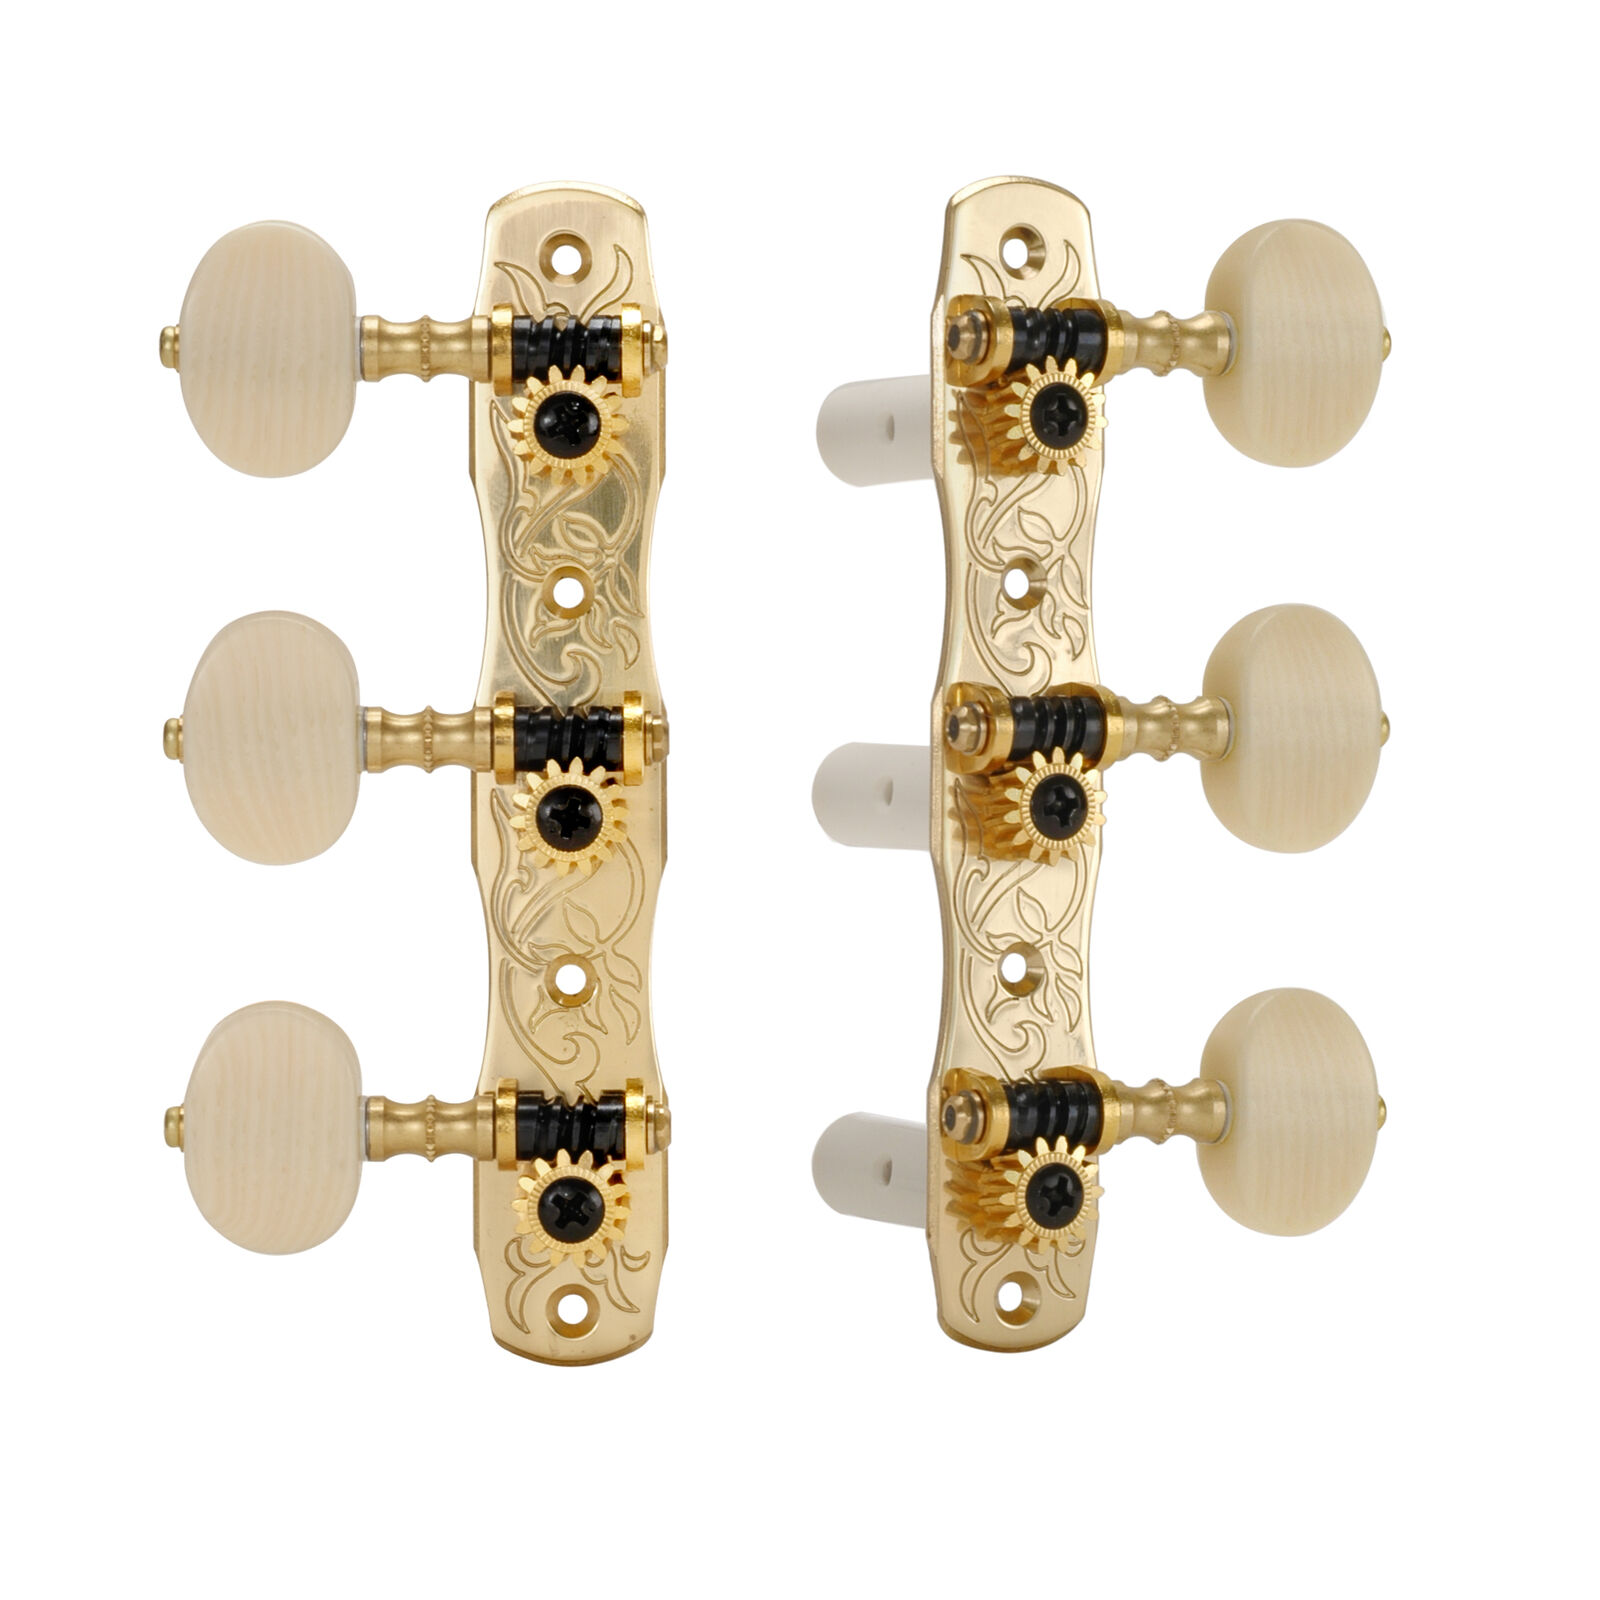 Gotoh Classical Guitar Tuners, With ivGoldid knobs